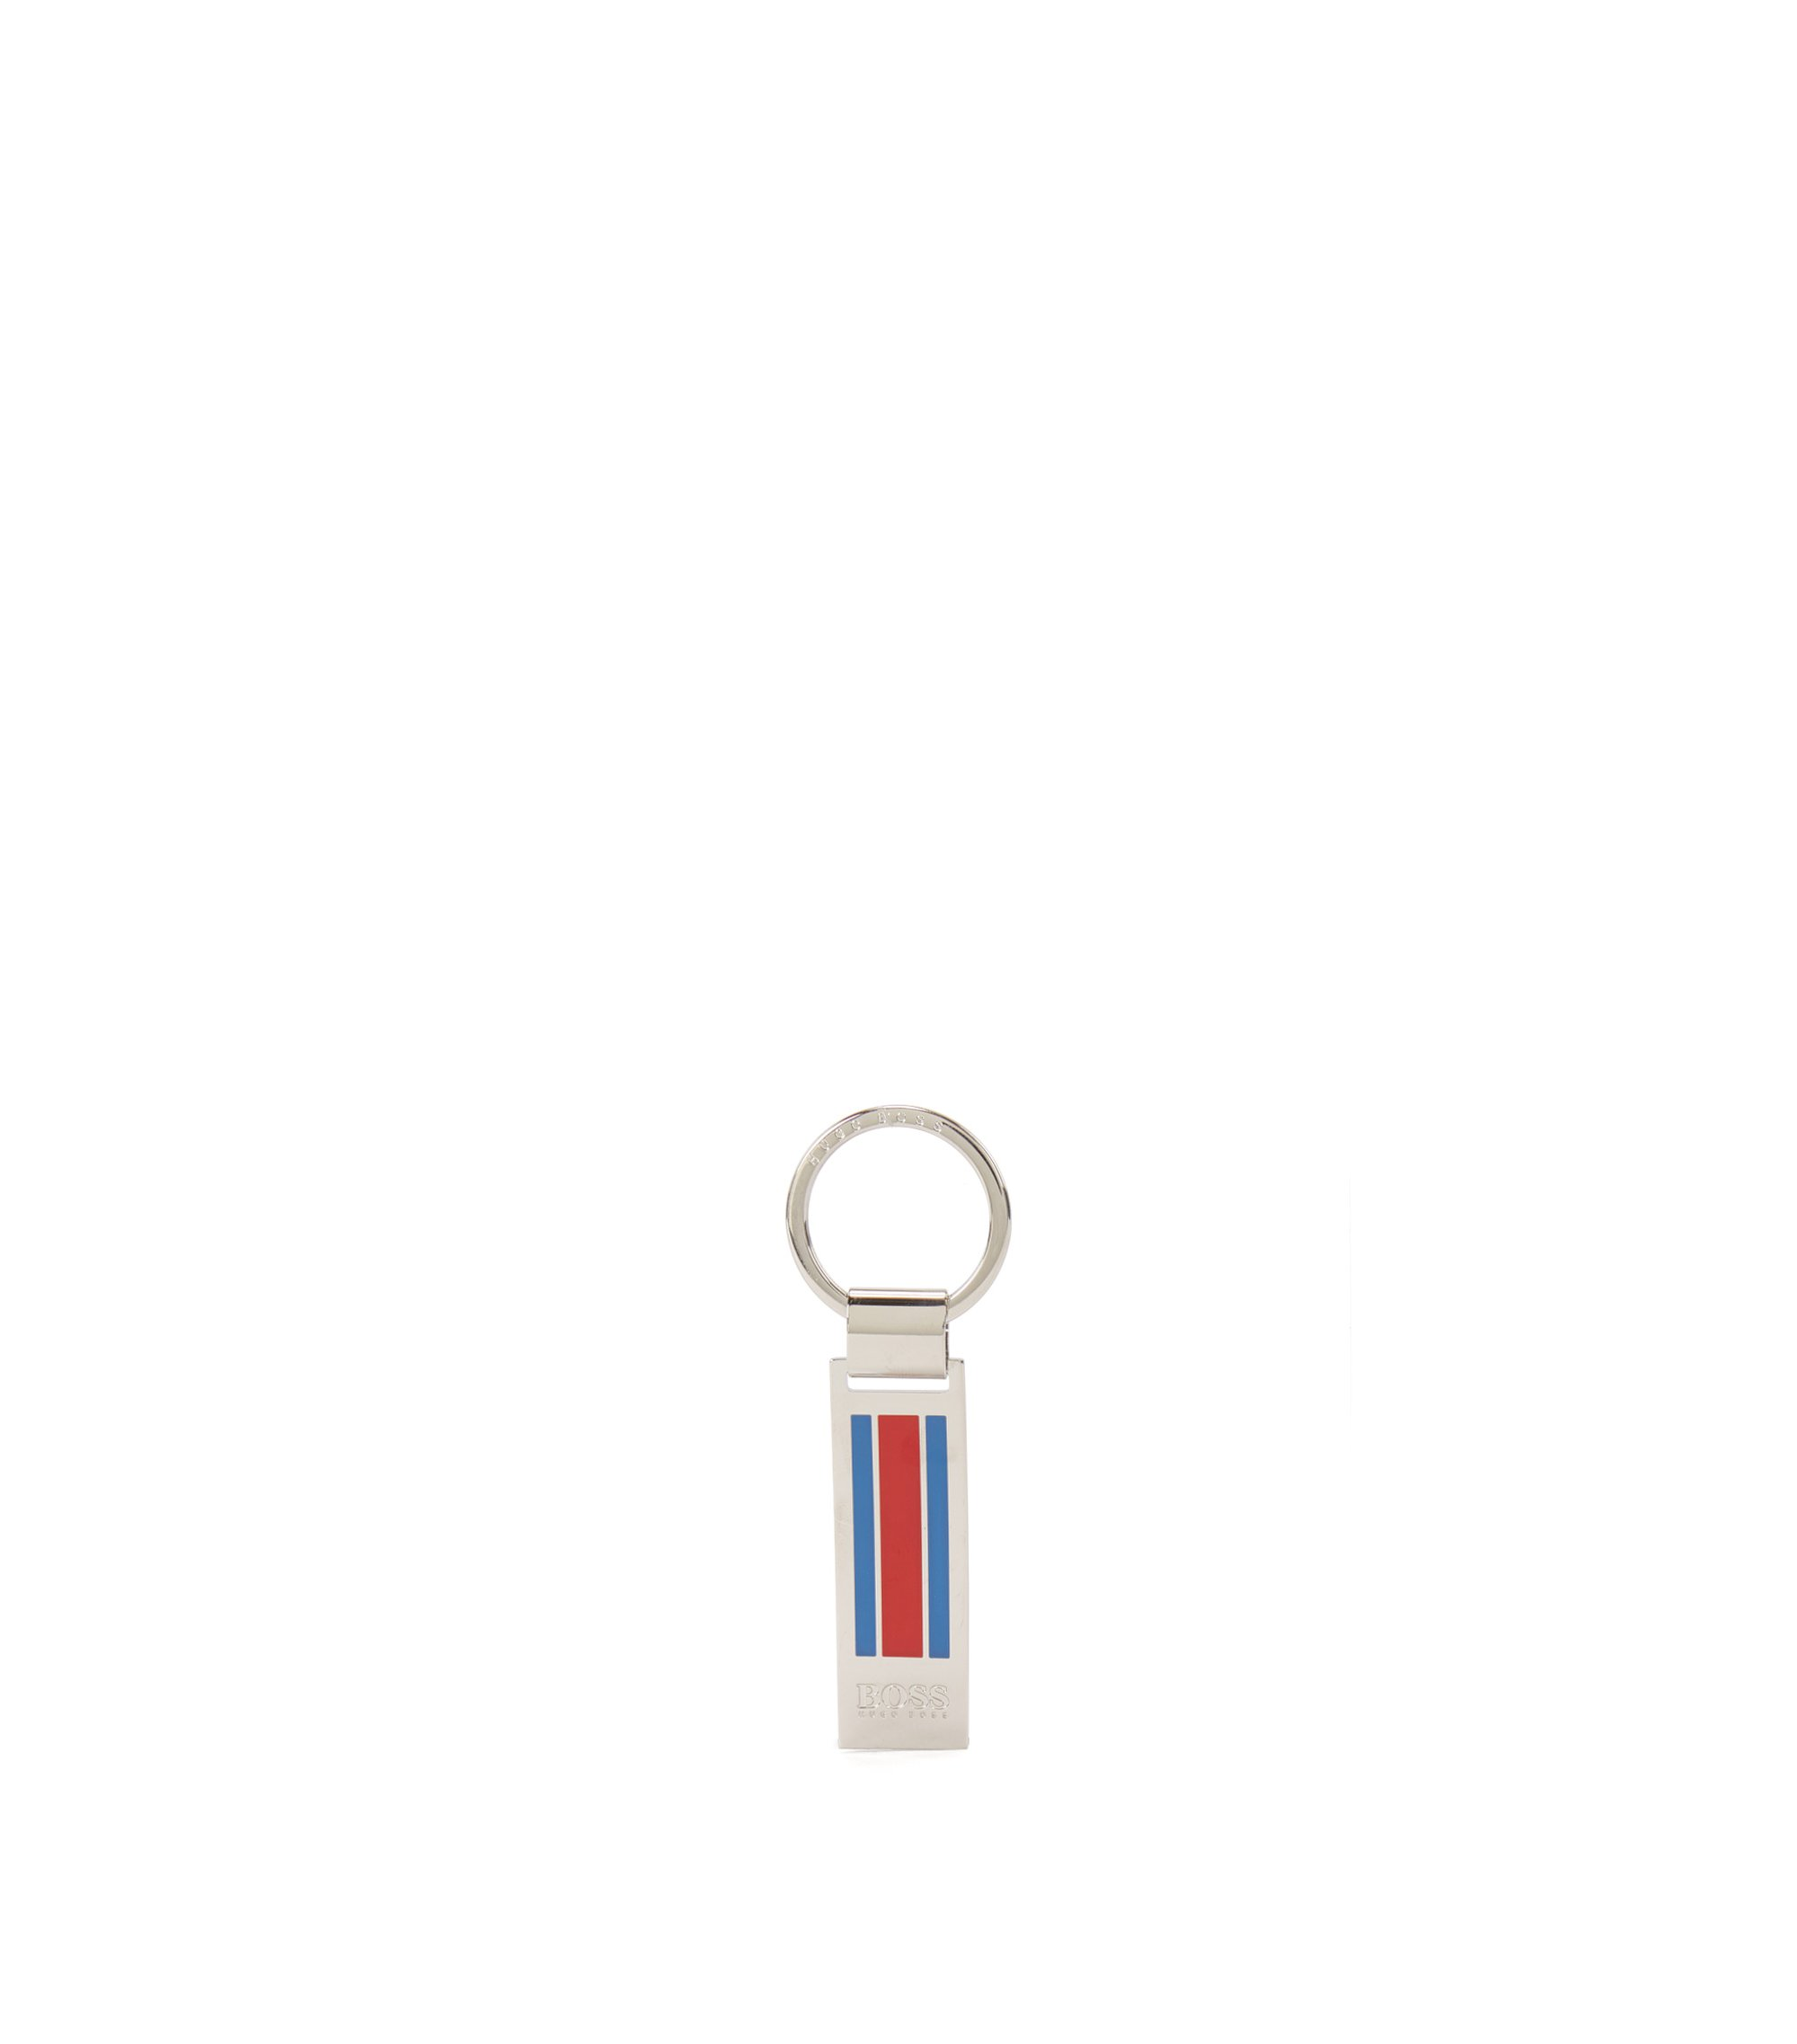 Enamel & Steel Key Fob | Timeless Key Holder, Silver